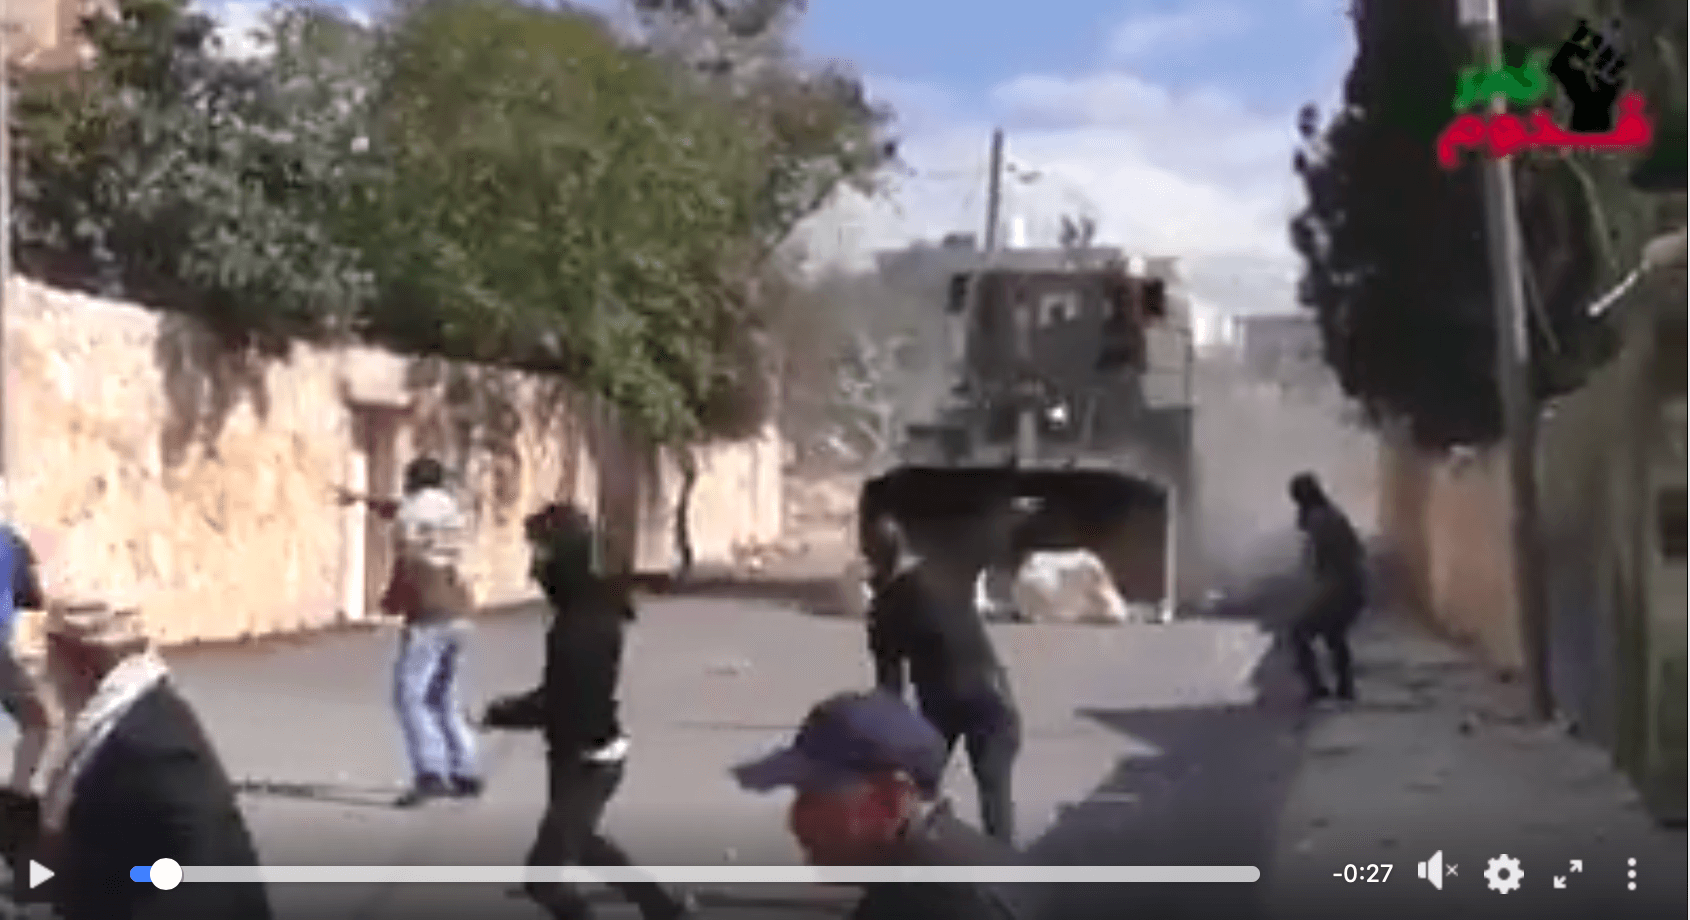 Video: Israeli forces attack Palestinian protesters with bulldozer - Mondoweiss